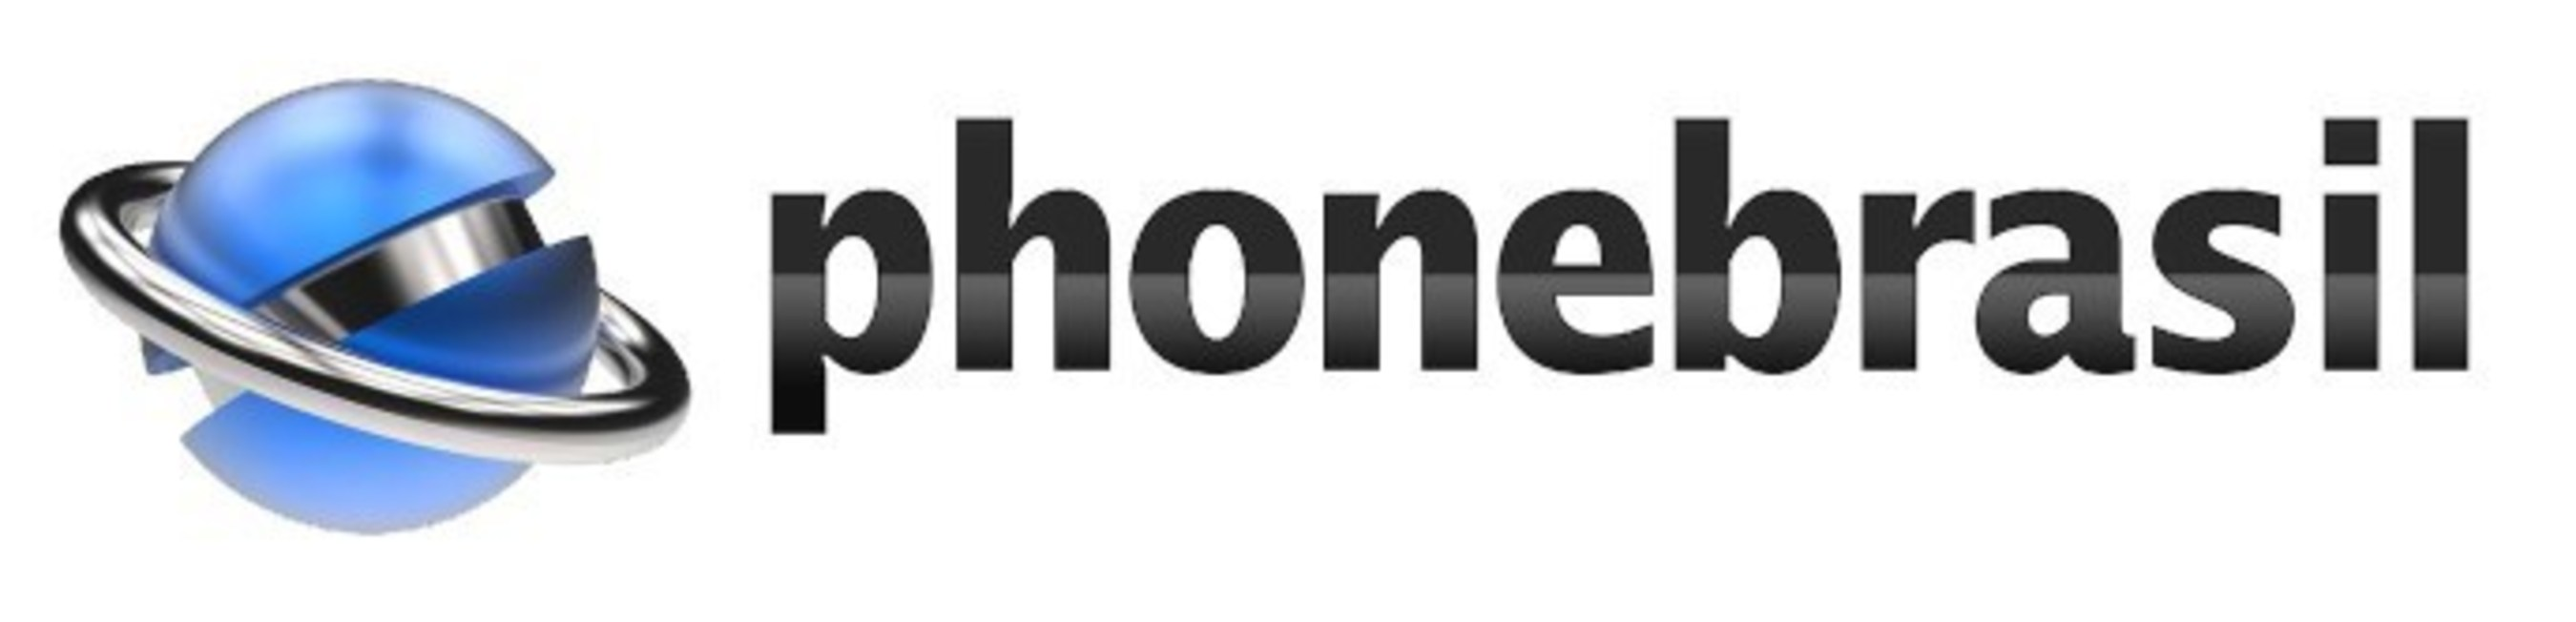 After a relatively quiet four years, PhoneBrasil announces new products, services and great worldwide partnerships